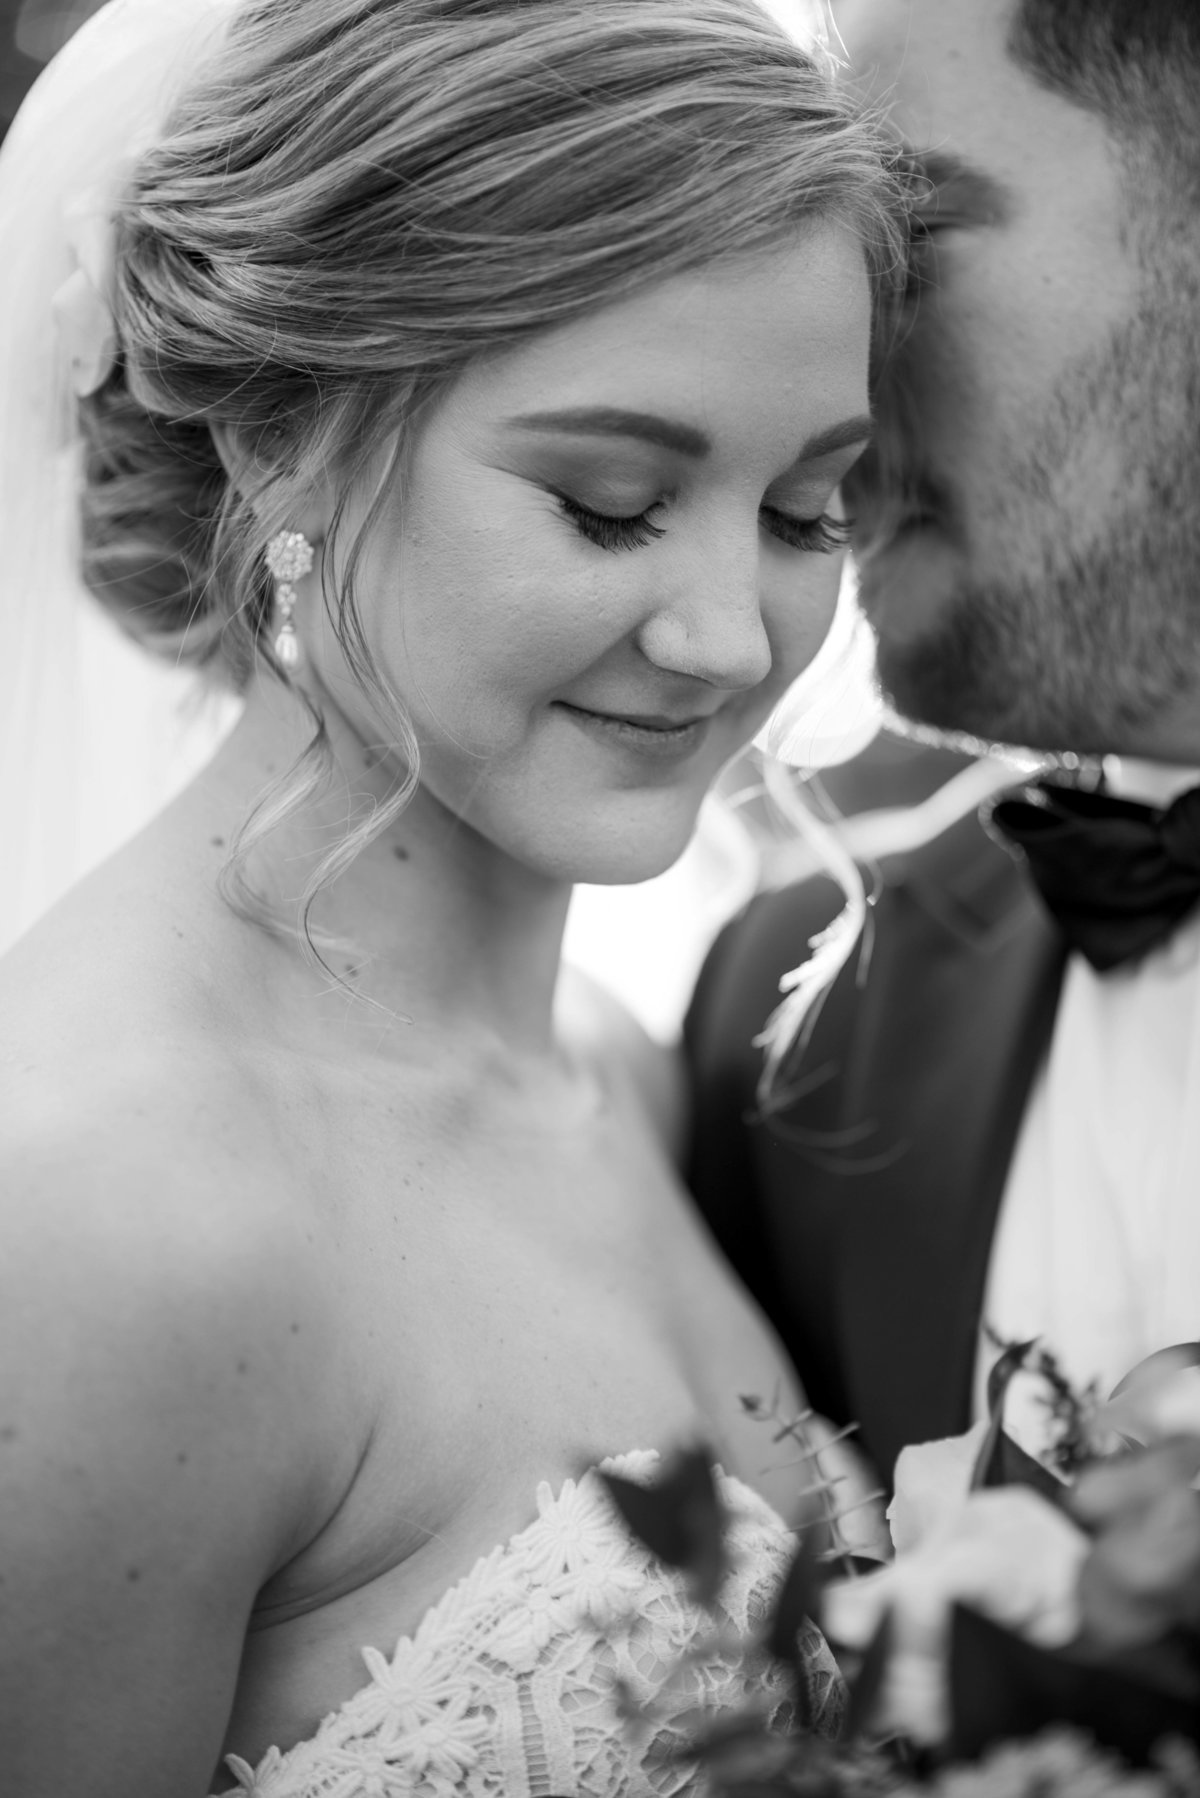 Dahlgren Chapel Wedding by Washington Dc Wedding Photographer, Erin Tetterton Photography